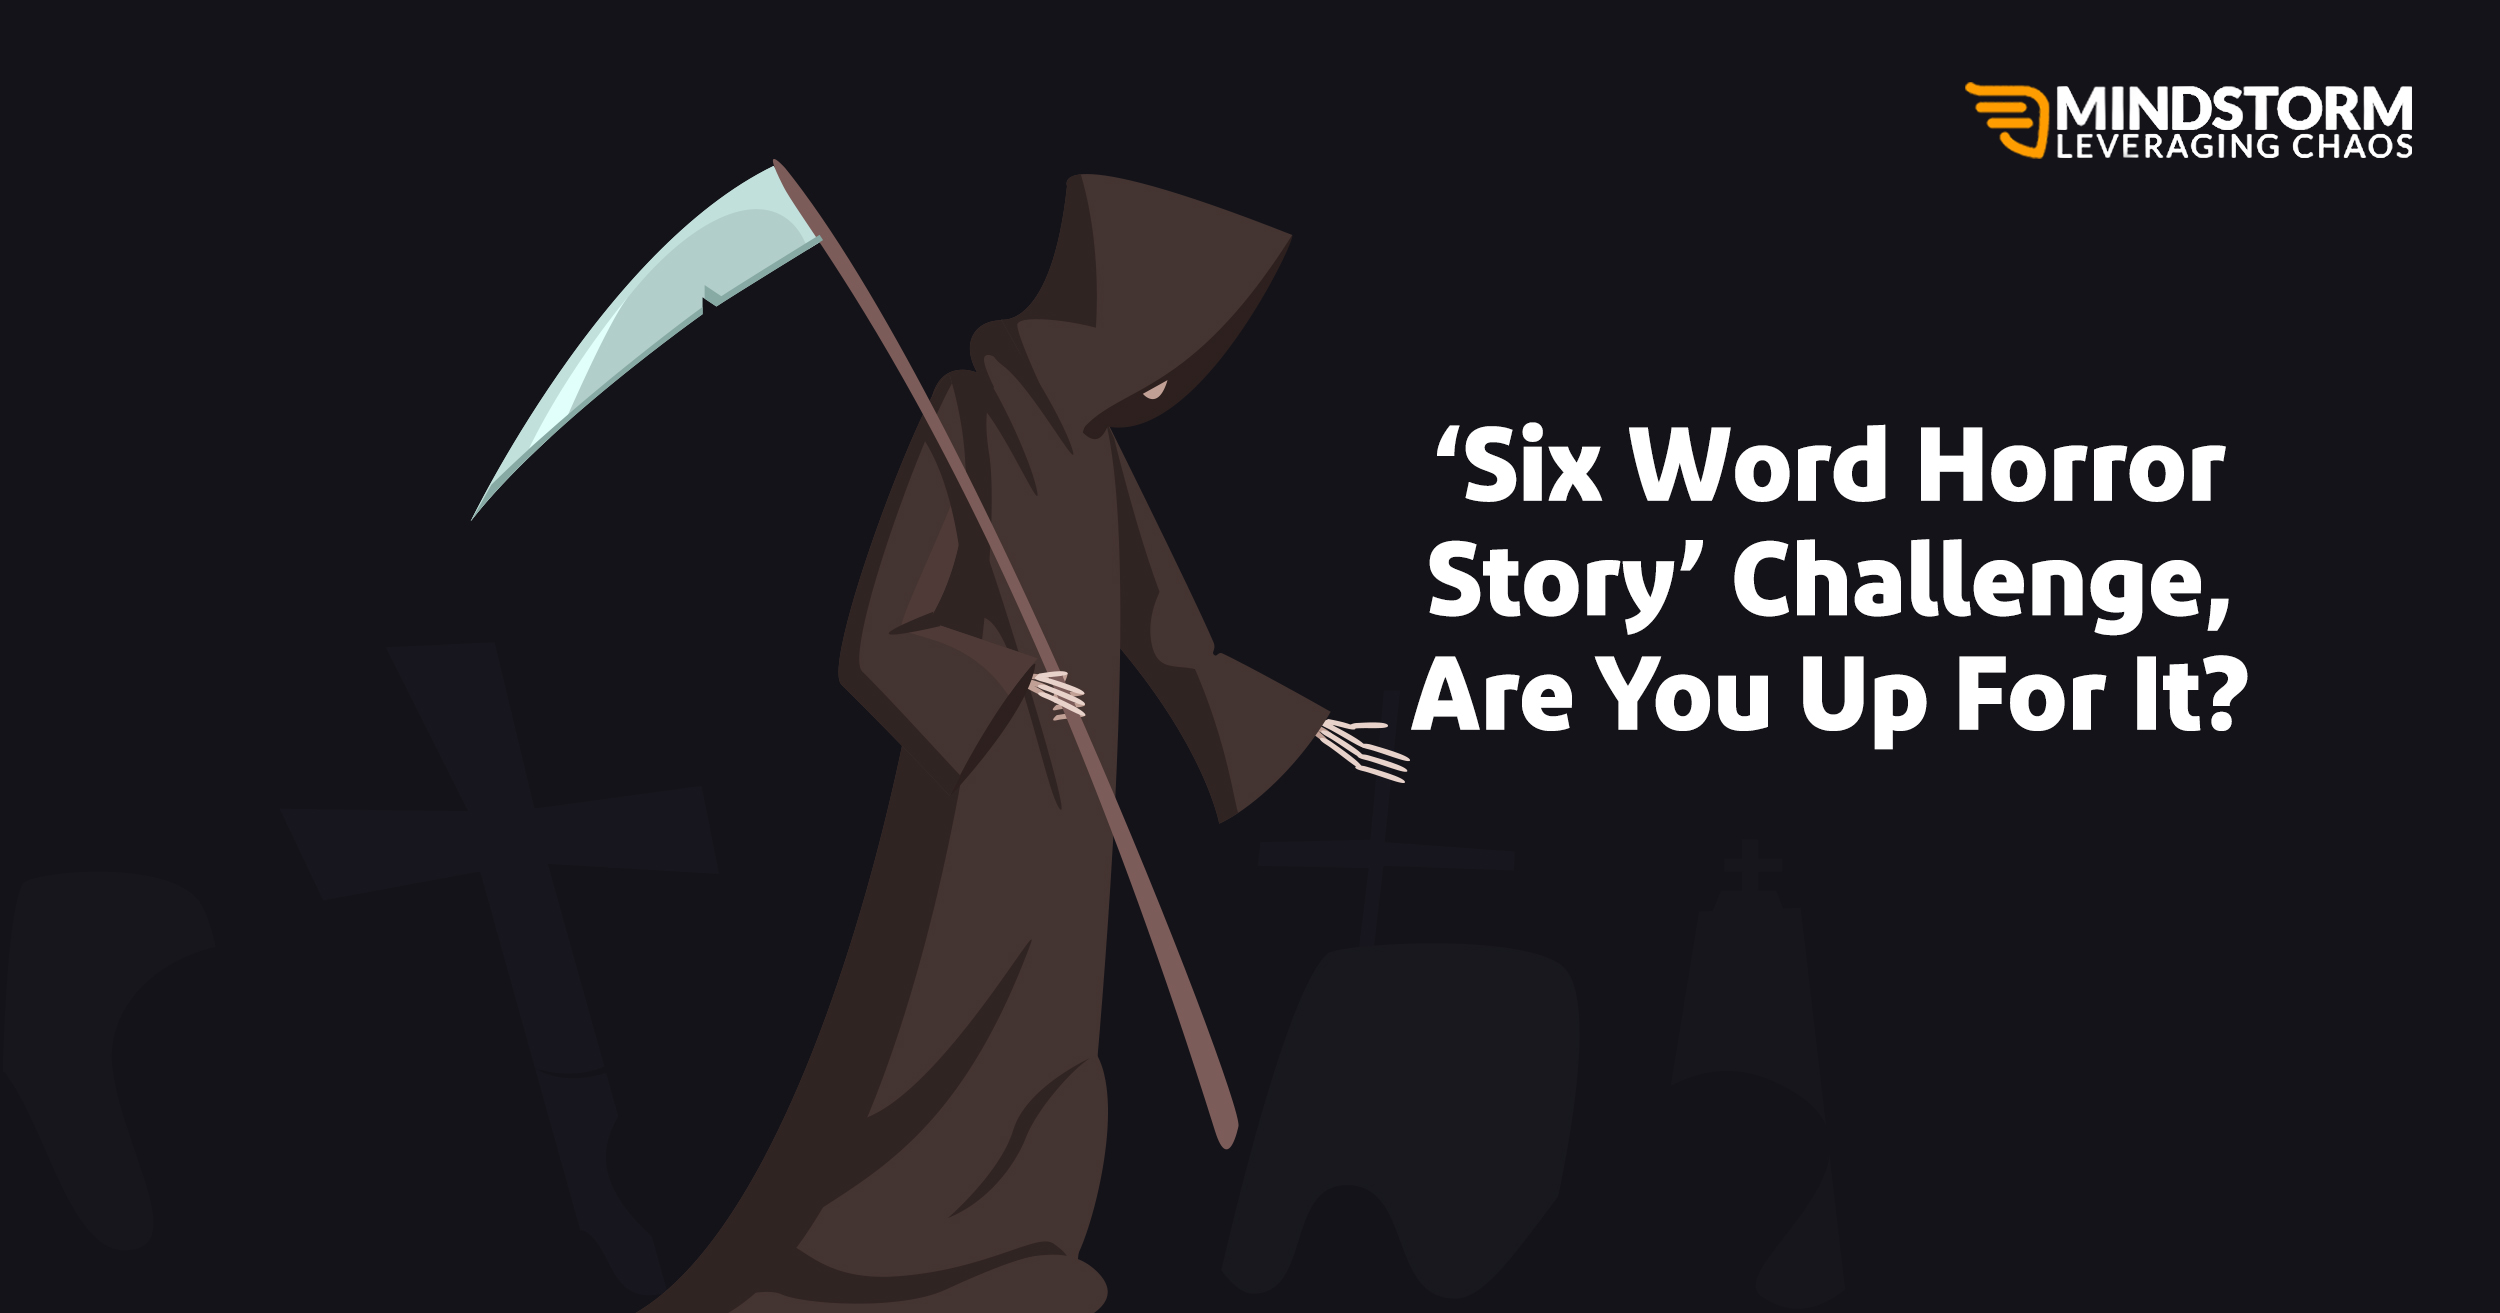 #SixWordHorrorStory Challenge, Are you up for it?